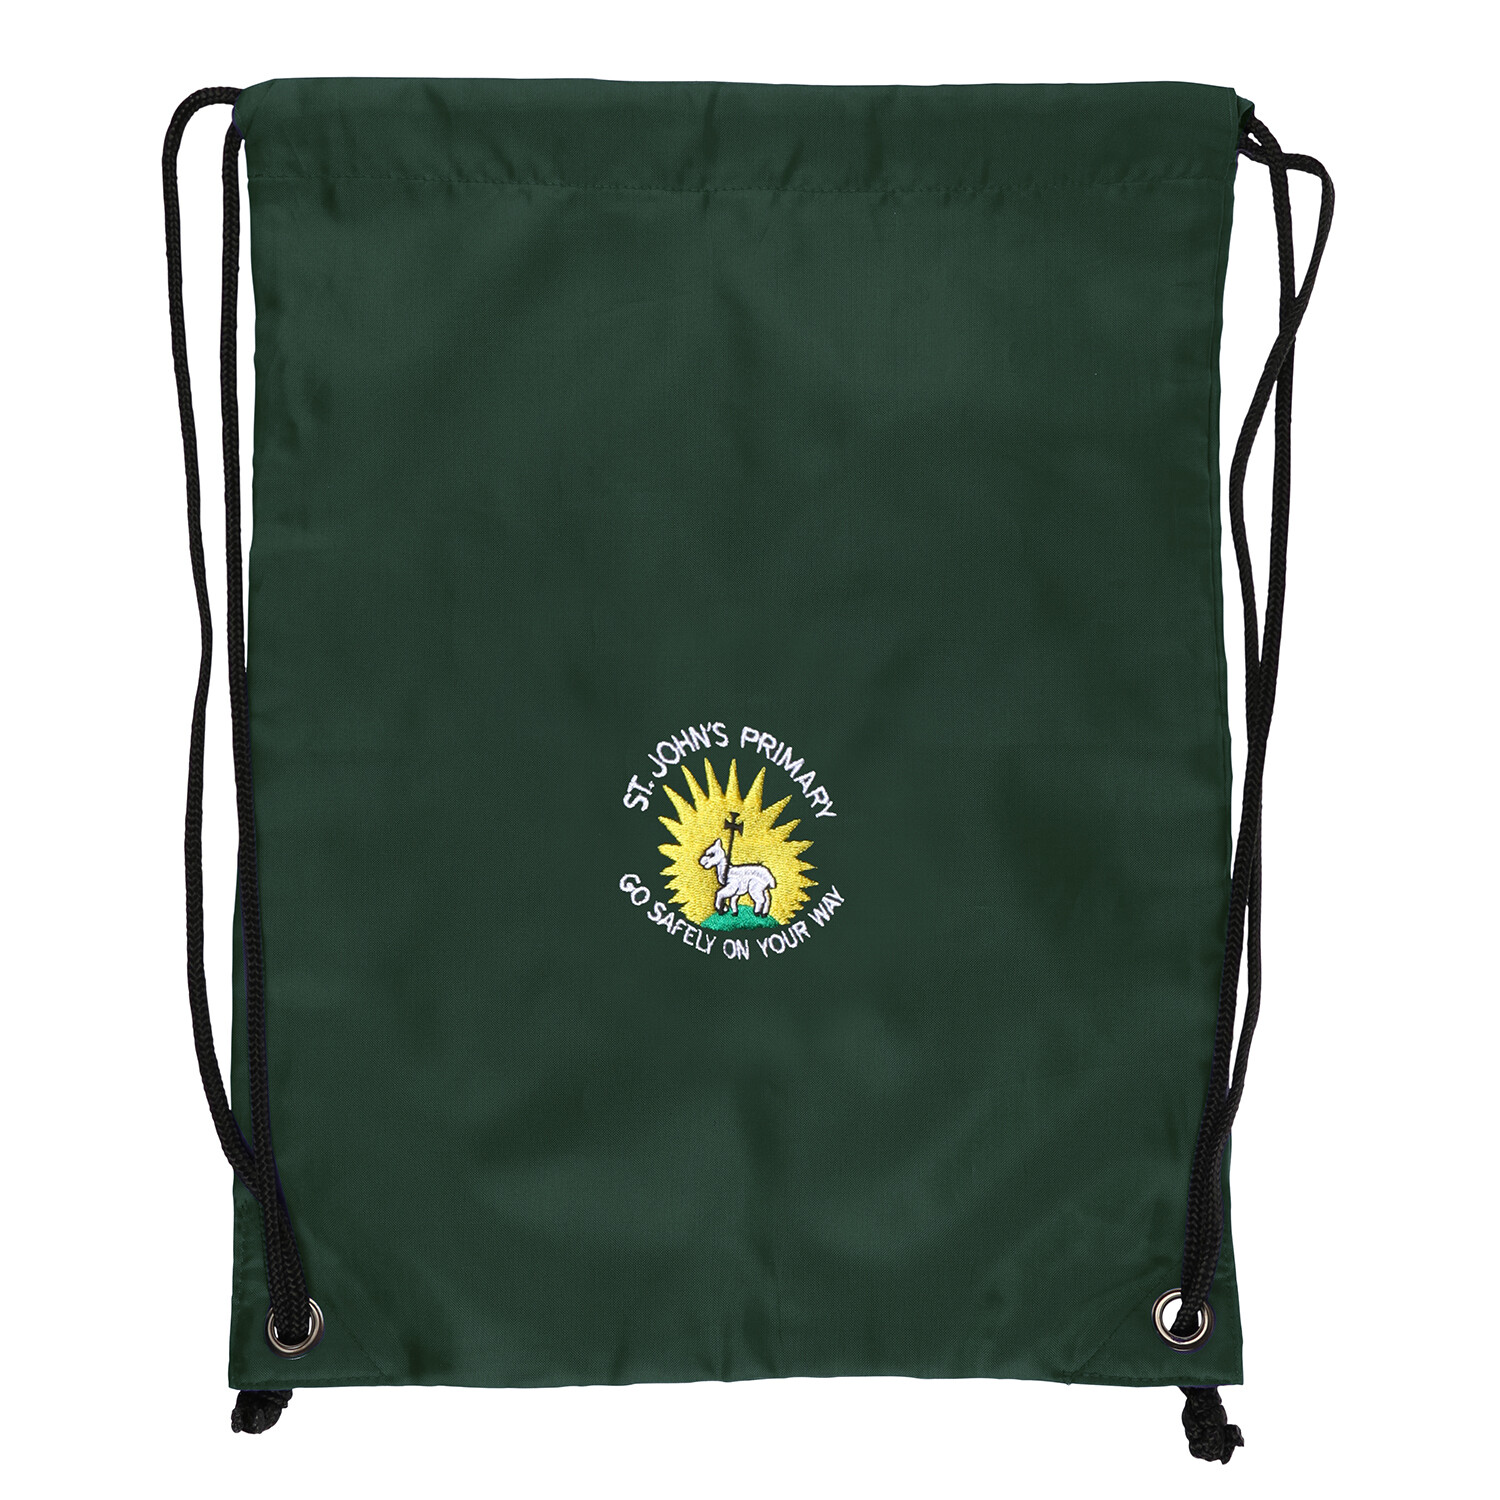 St John's Primary Gym Bag